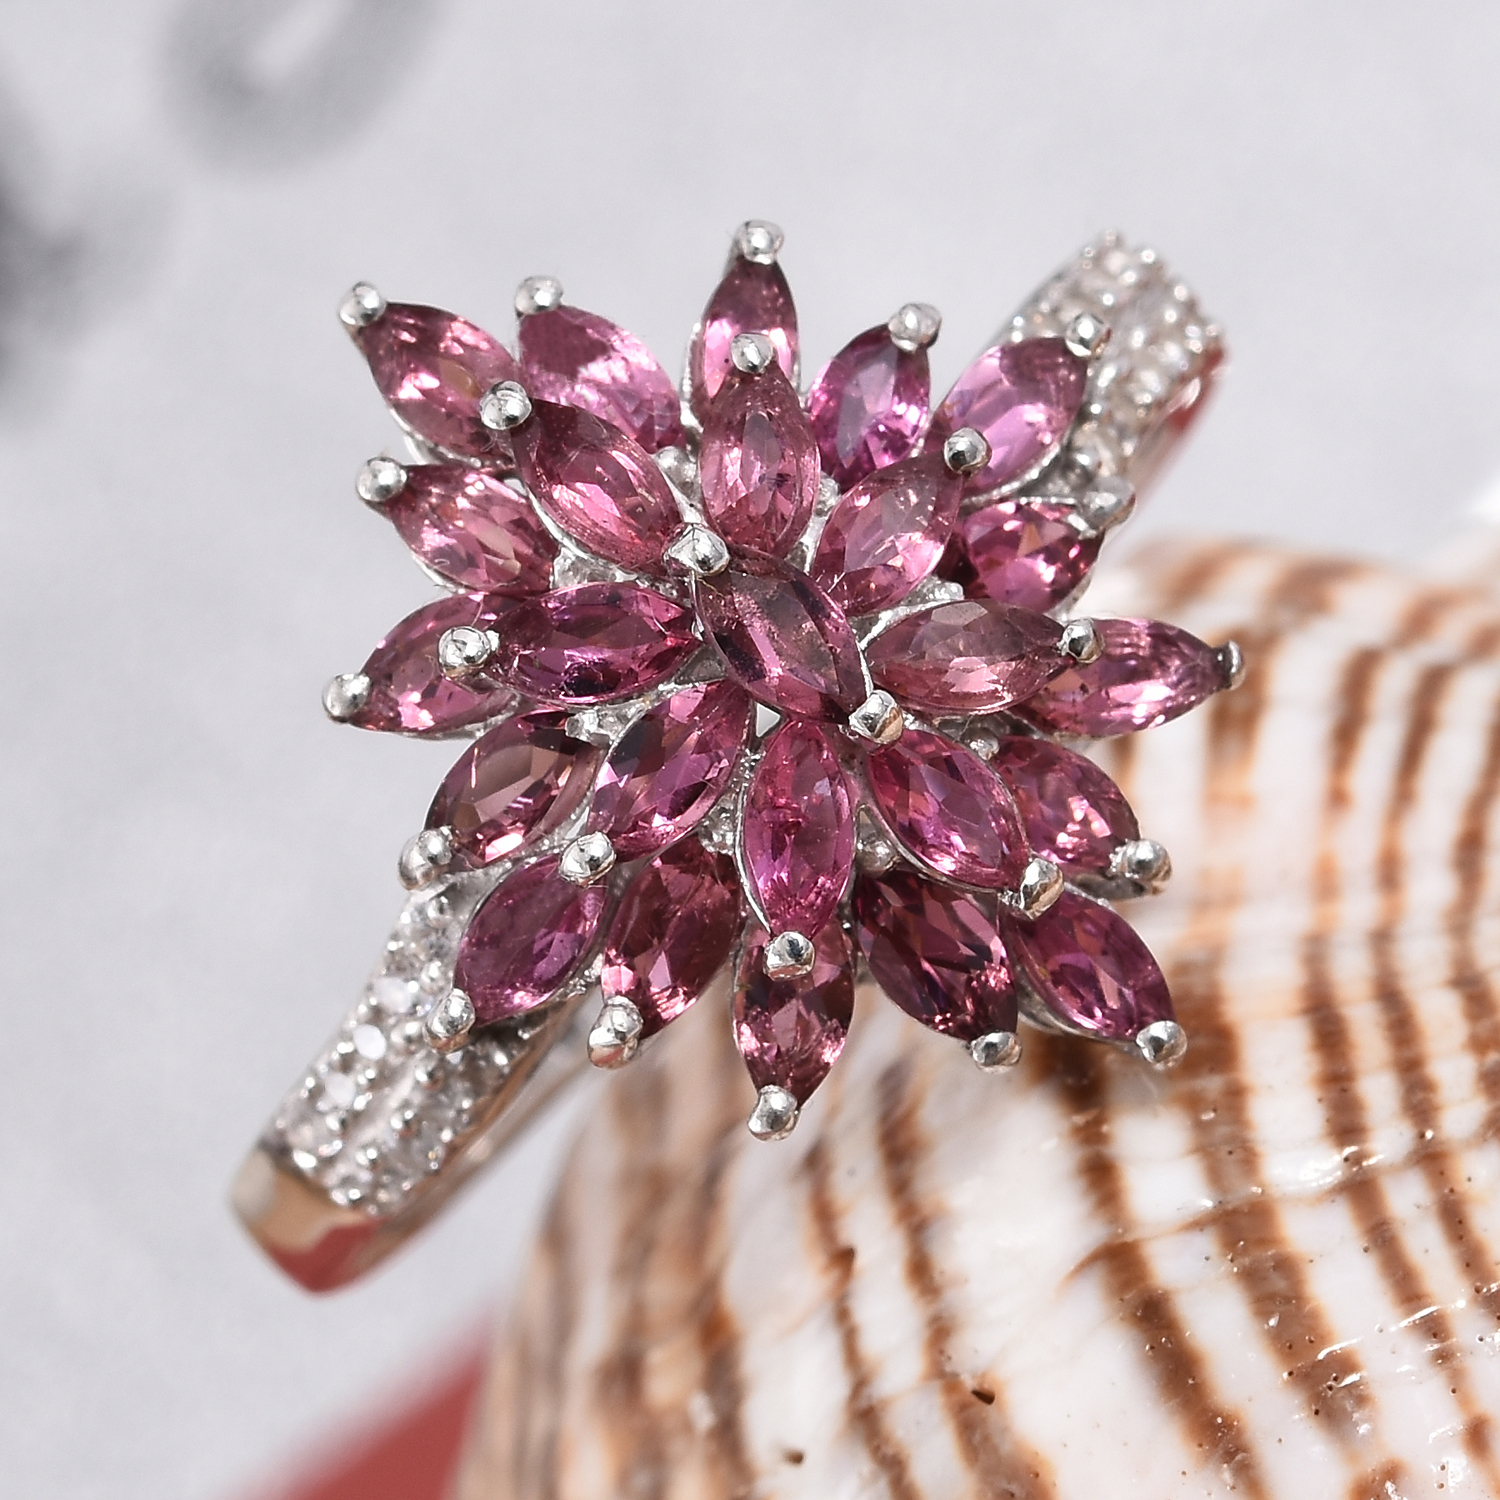 Morro Redondo Pink Tourmaline, Cambodian Zircon Ring in Platinum Over Sterling Silver (Size 5.0) 2.00 ctw